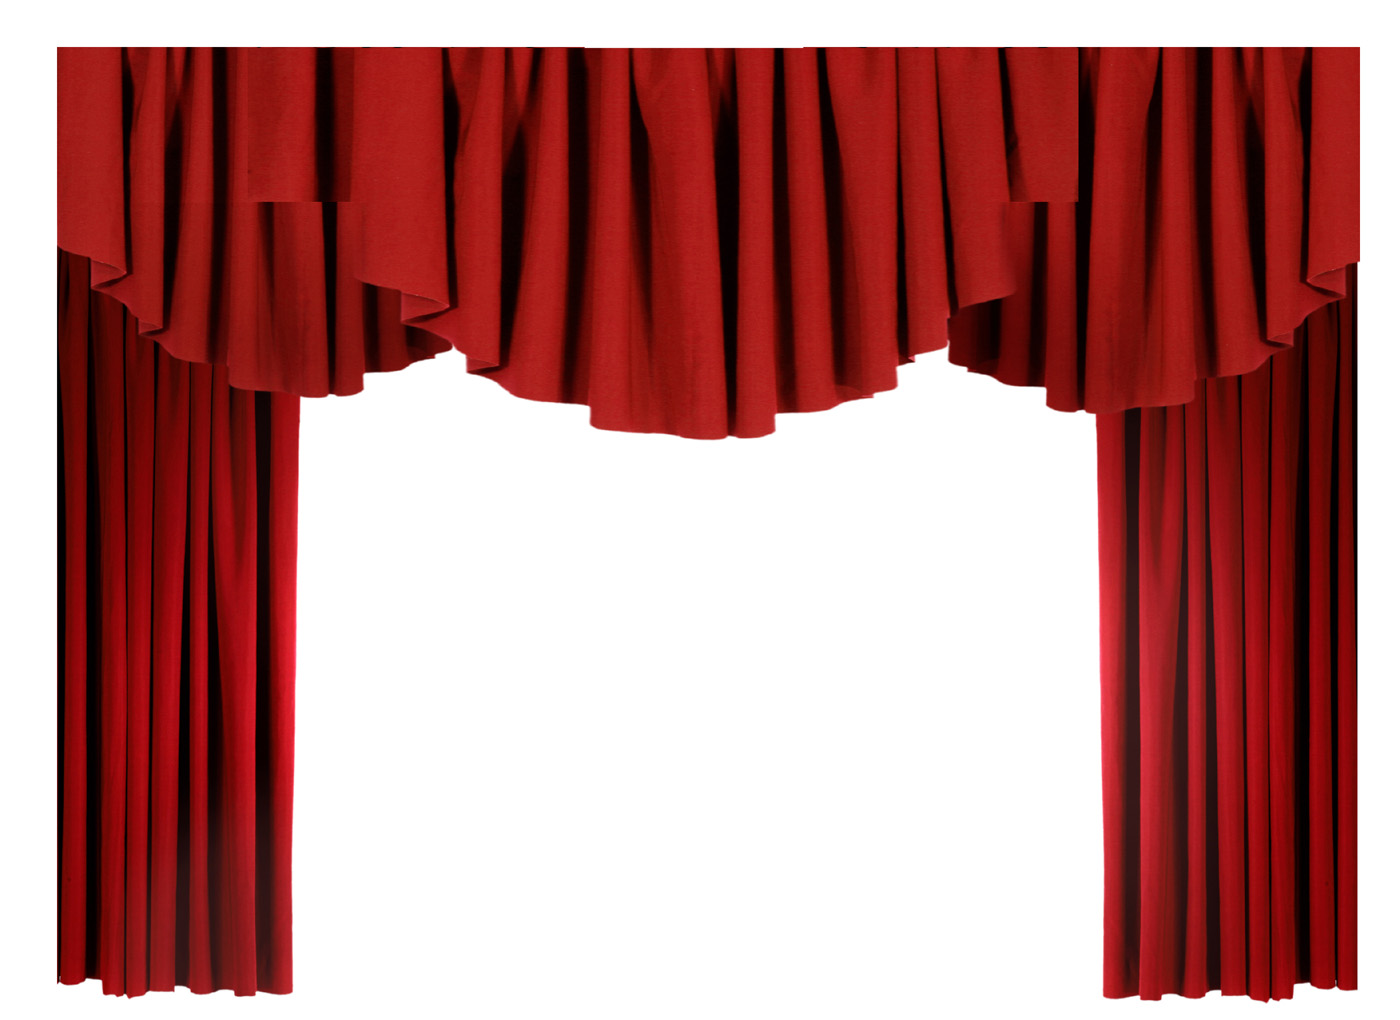 Red curtain curtain 10865